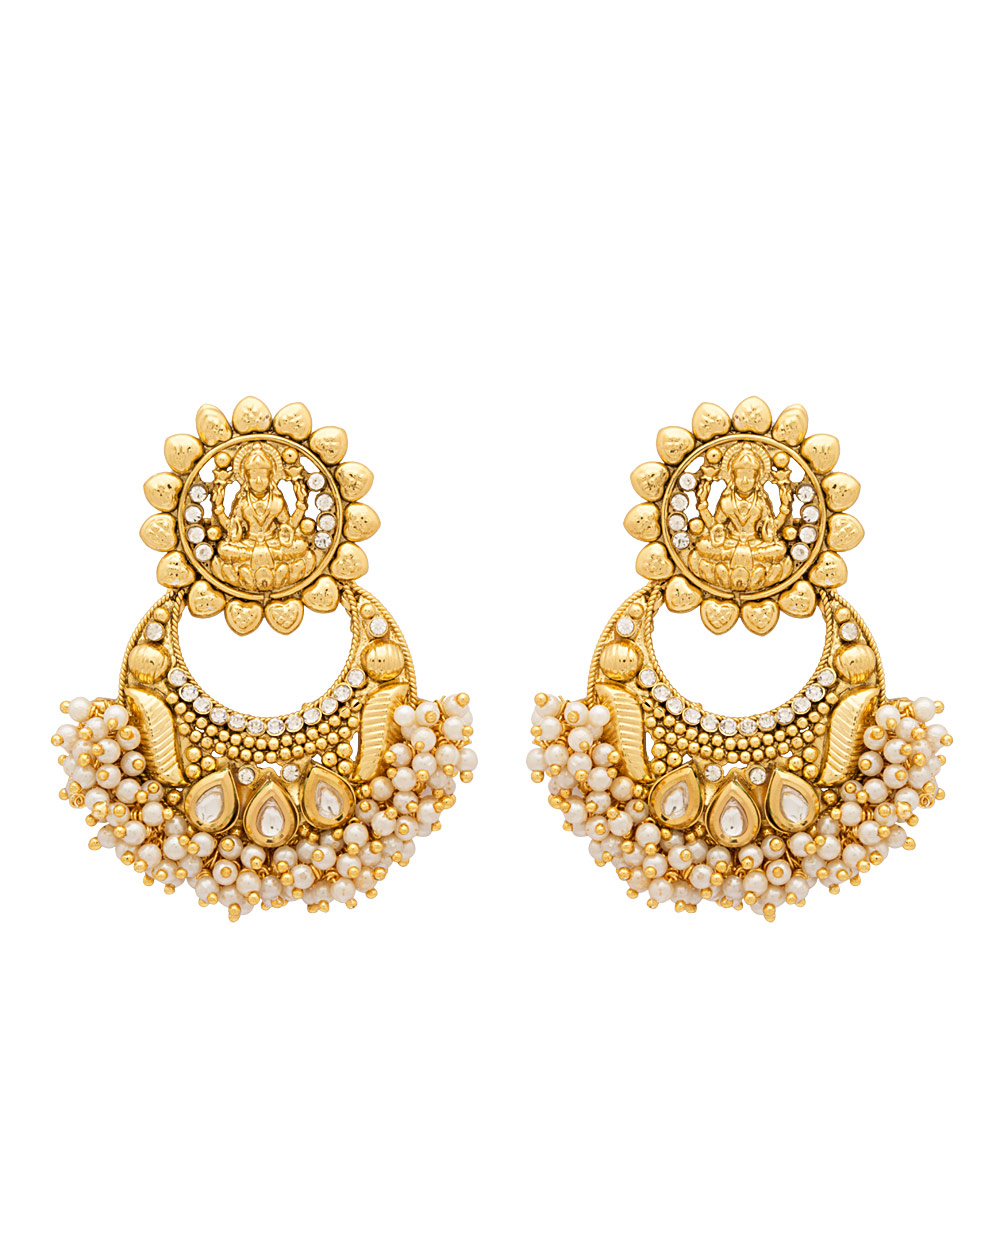 Classic Pair Of Earrings With Pearl Beads Bunch | Buy Designer ...